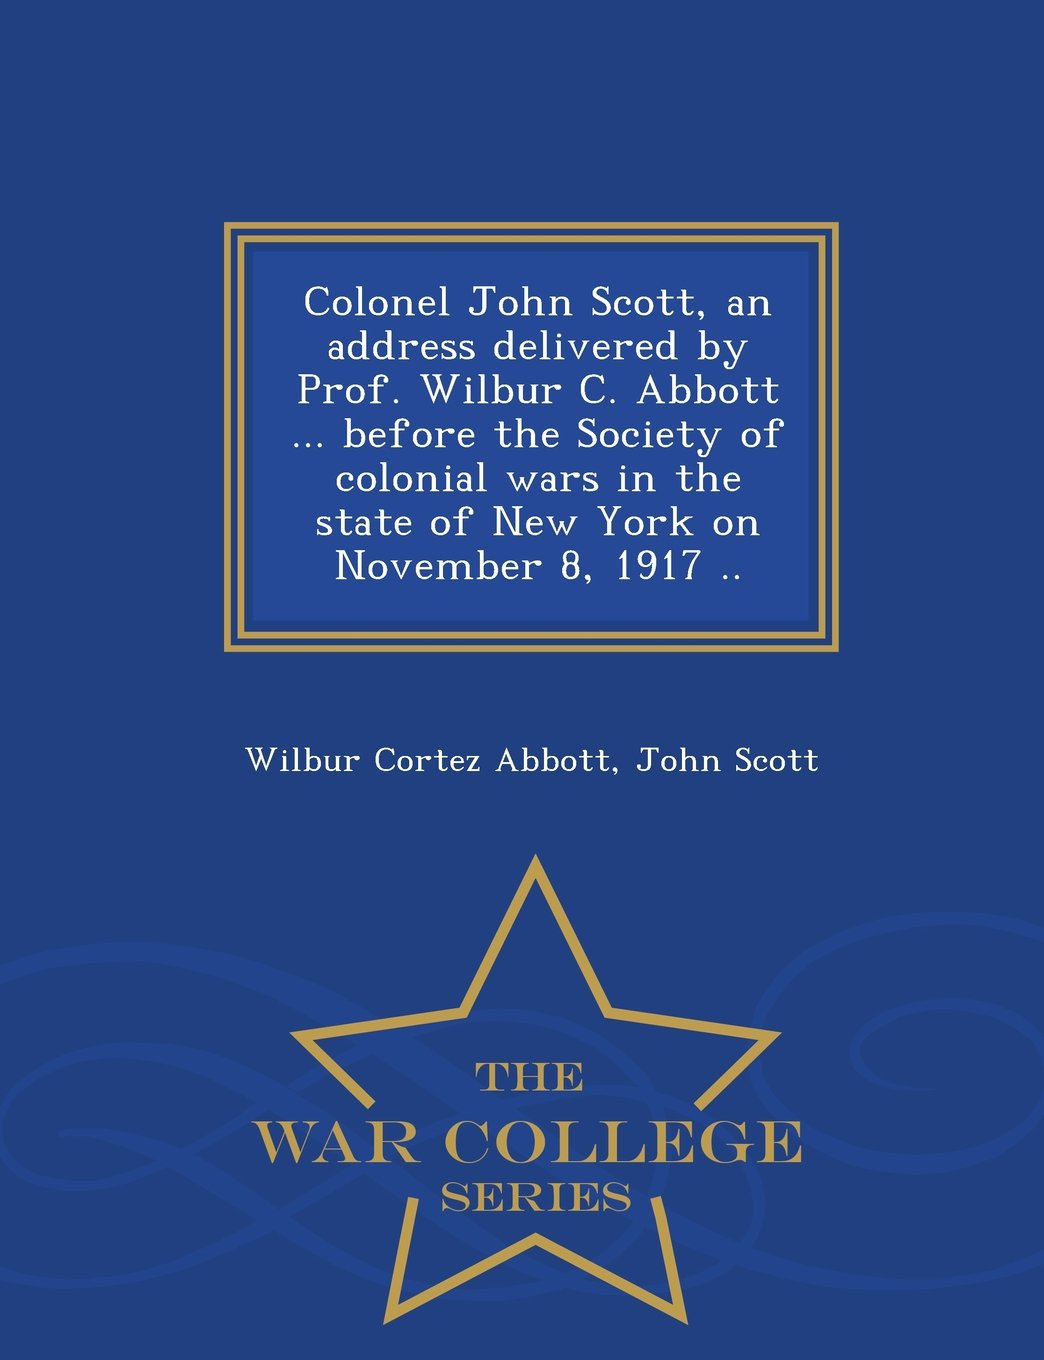 Colonel John Scott, an address delivered by Prof. Wilbur C. Abbott ... before the Society of colonial wars in the state of New York on November 8, 1917 ..  - War College Series pdf